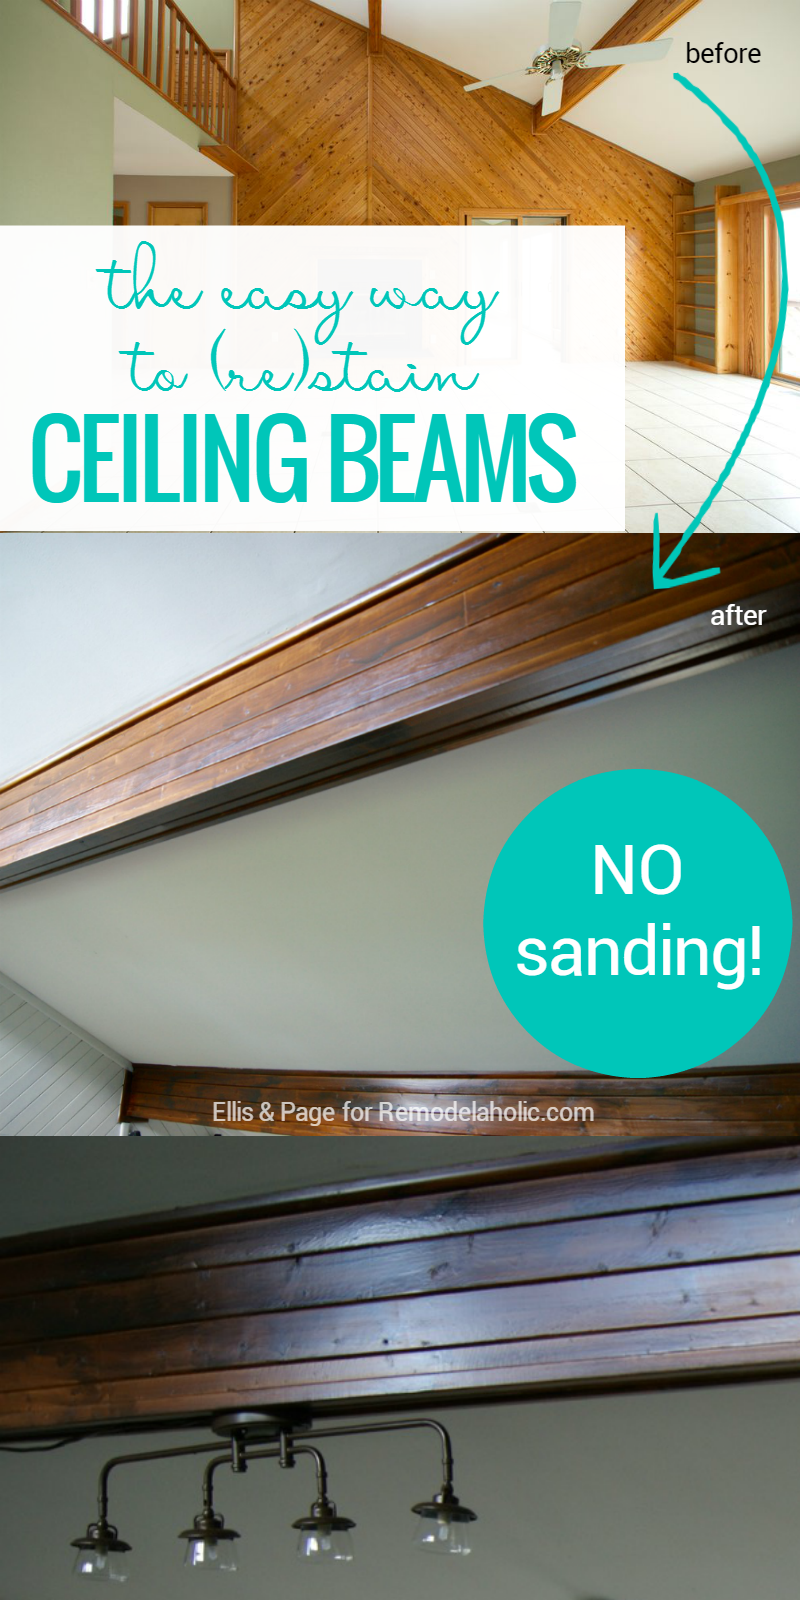 Easy Way To Stain Wood Ceiling Beams Remodelaholic Stained Wood Beams Wood Beams Staining Wood